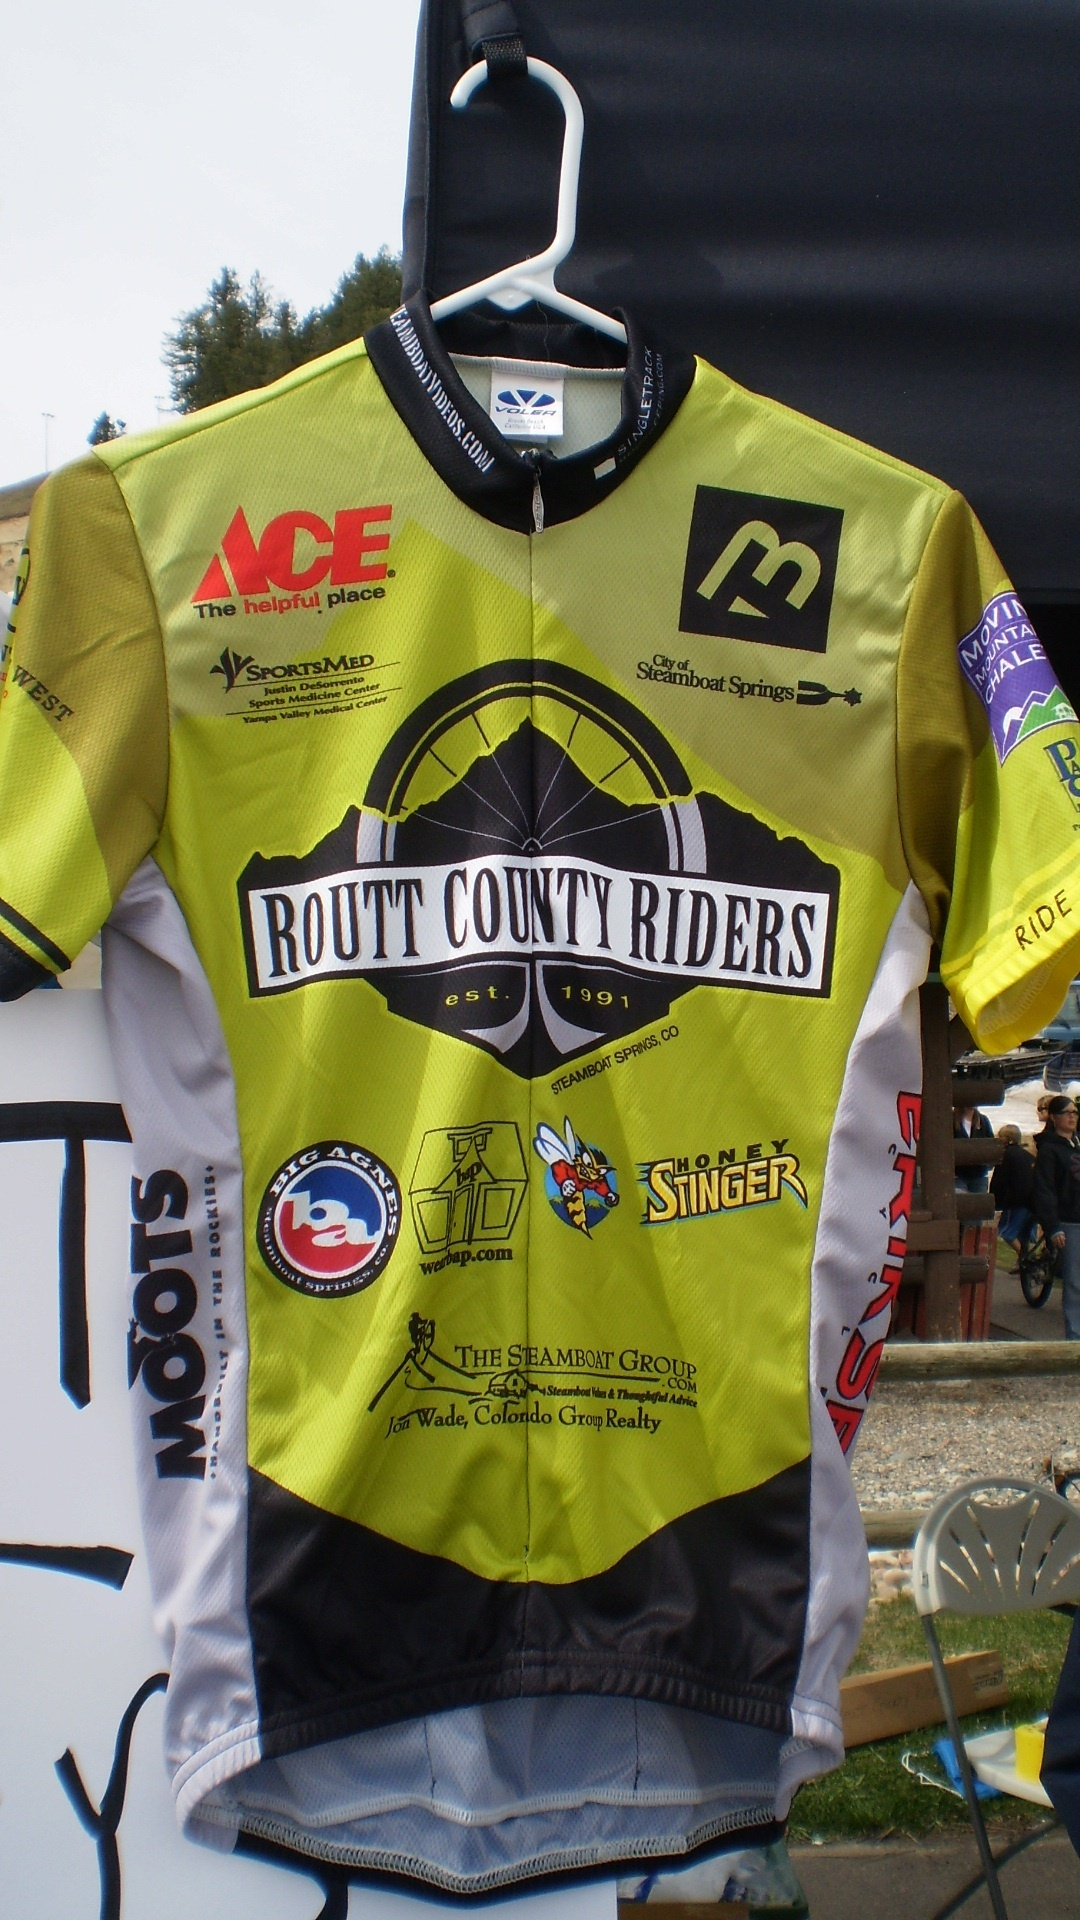 routt_county_riders_jersey_10_1920